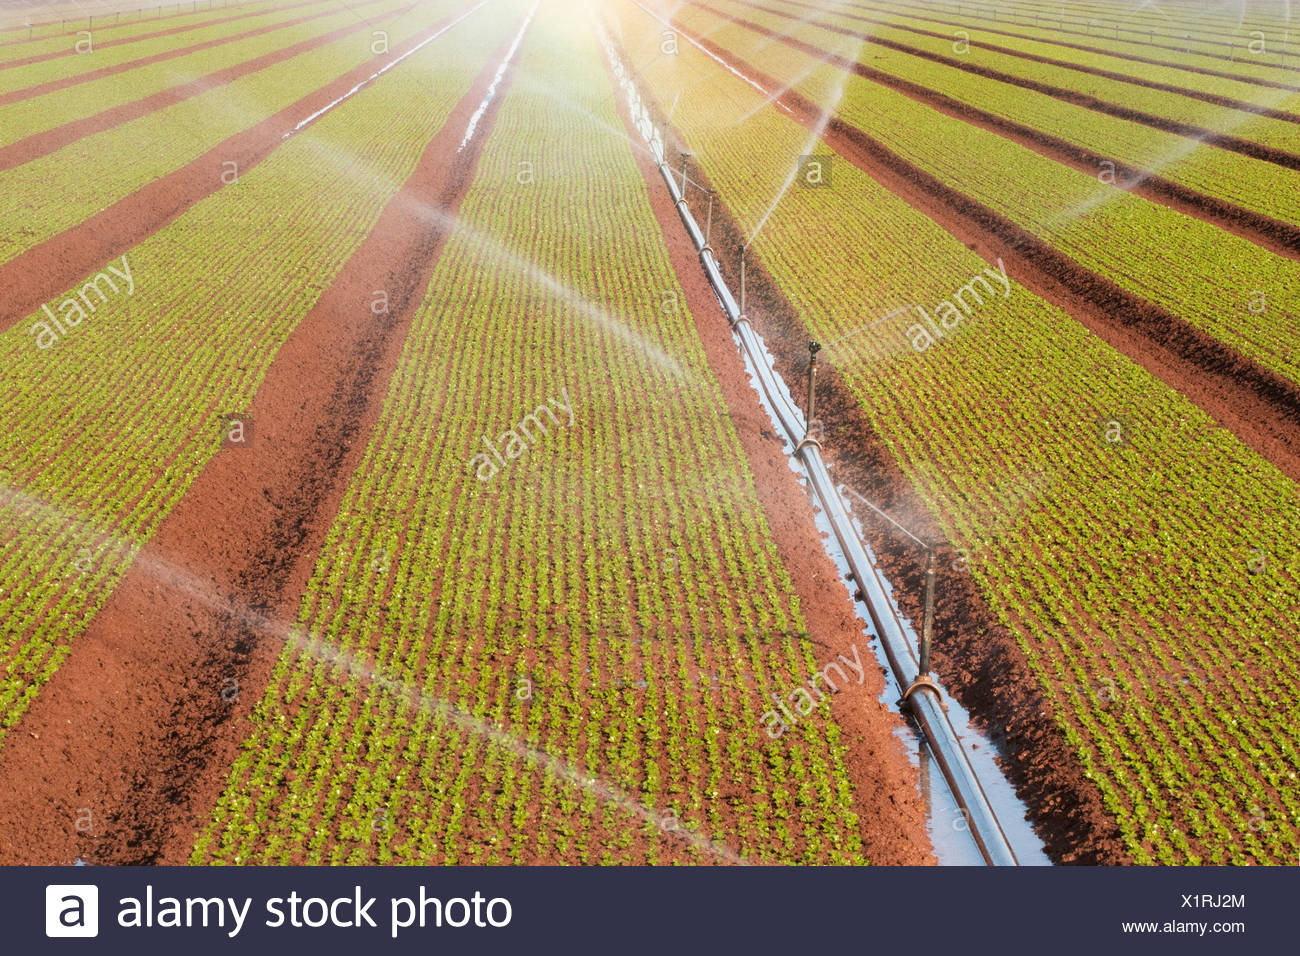 Sprinklers cause rainbows as they water rows of newly planted crops. - Stock Image